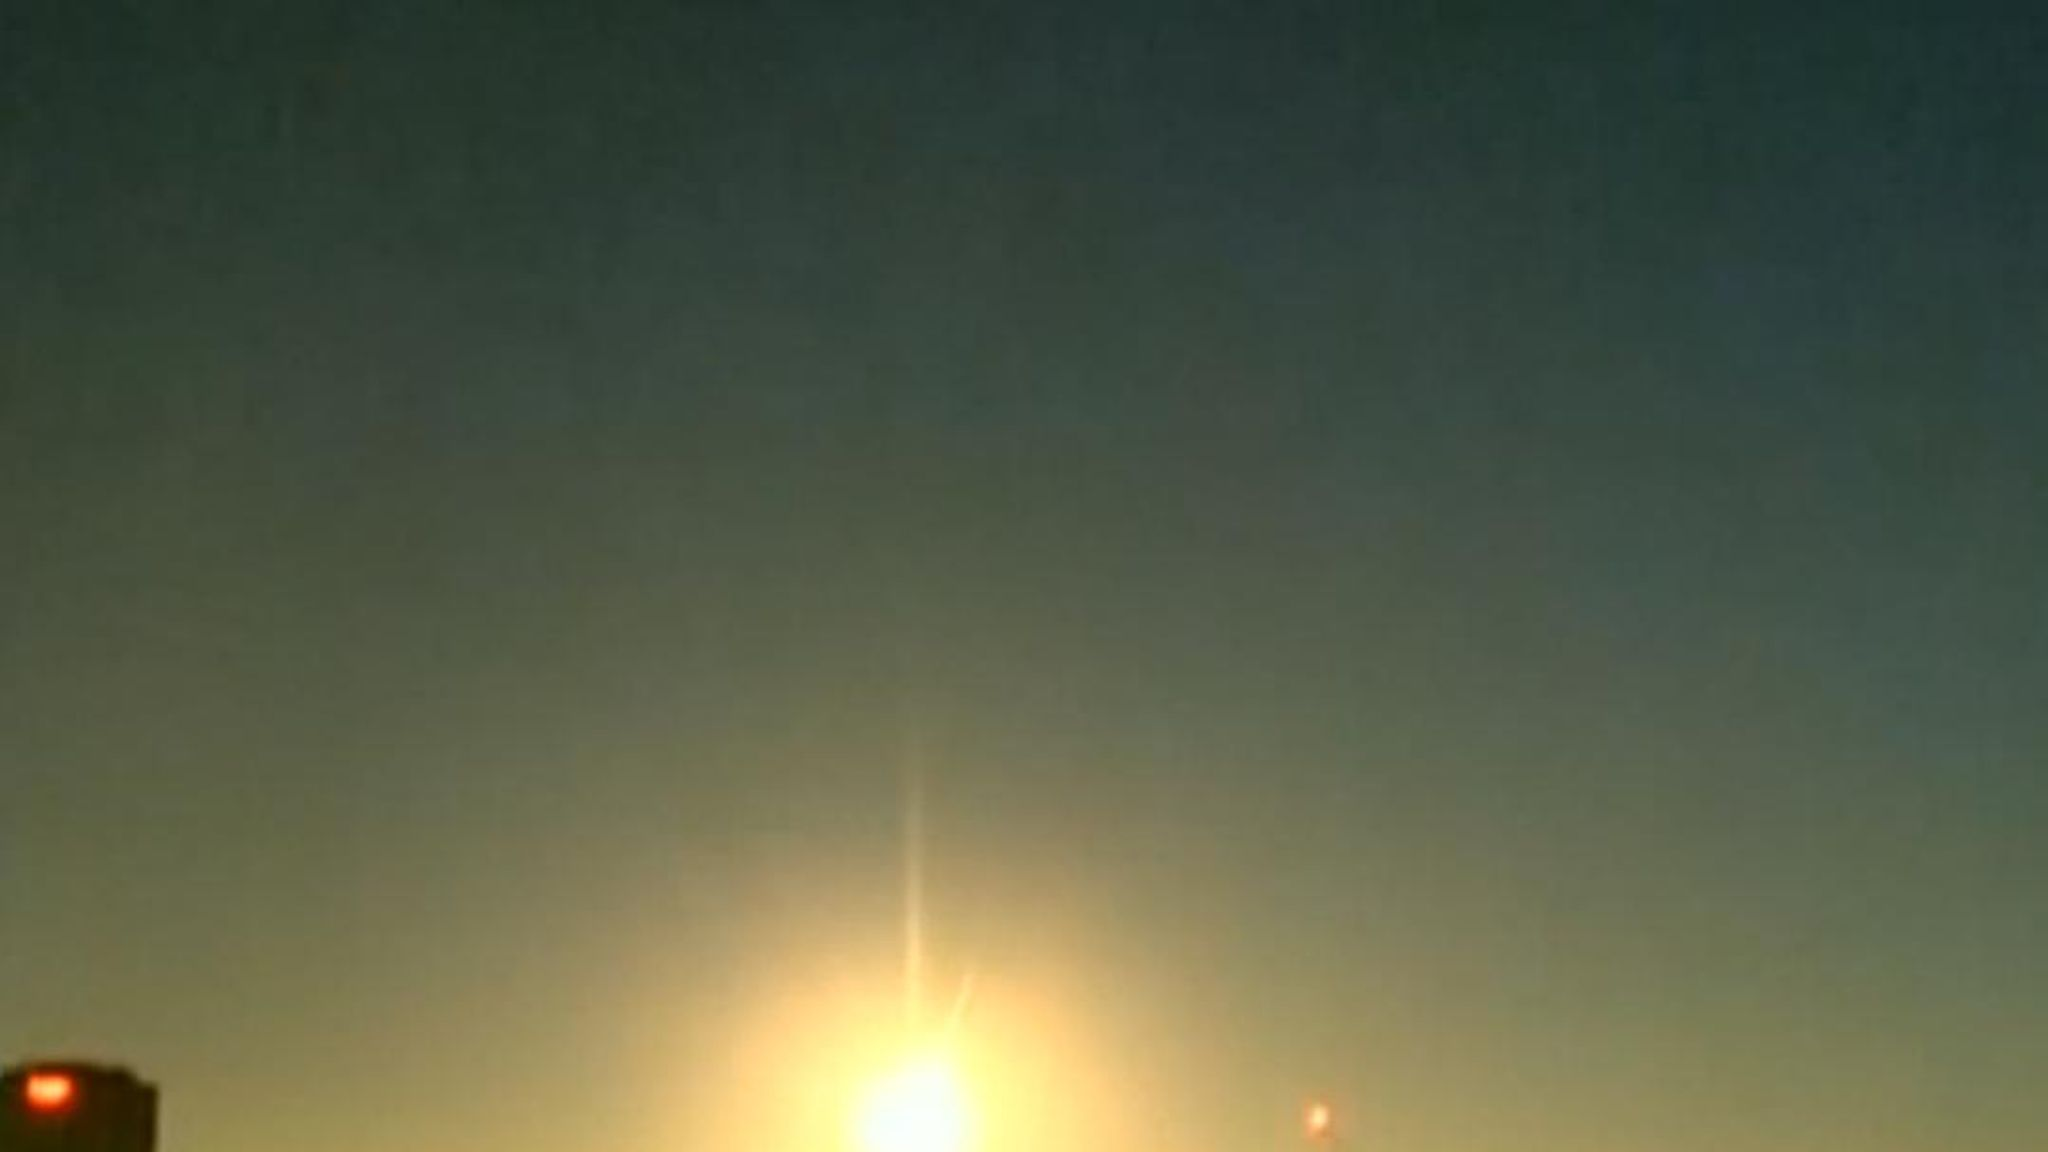 A meteor has been seen over Australia, lighting up the Sky in Adelaide and  Mount Gambier